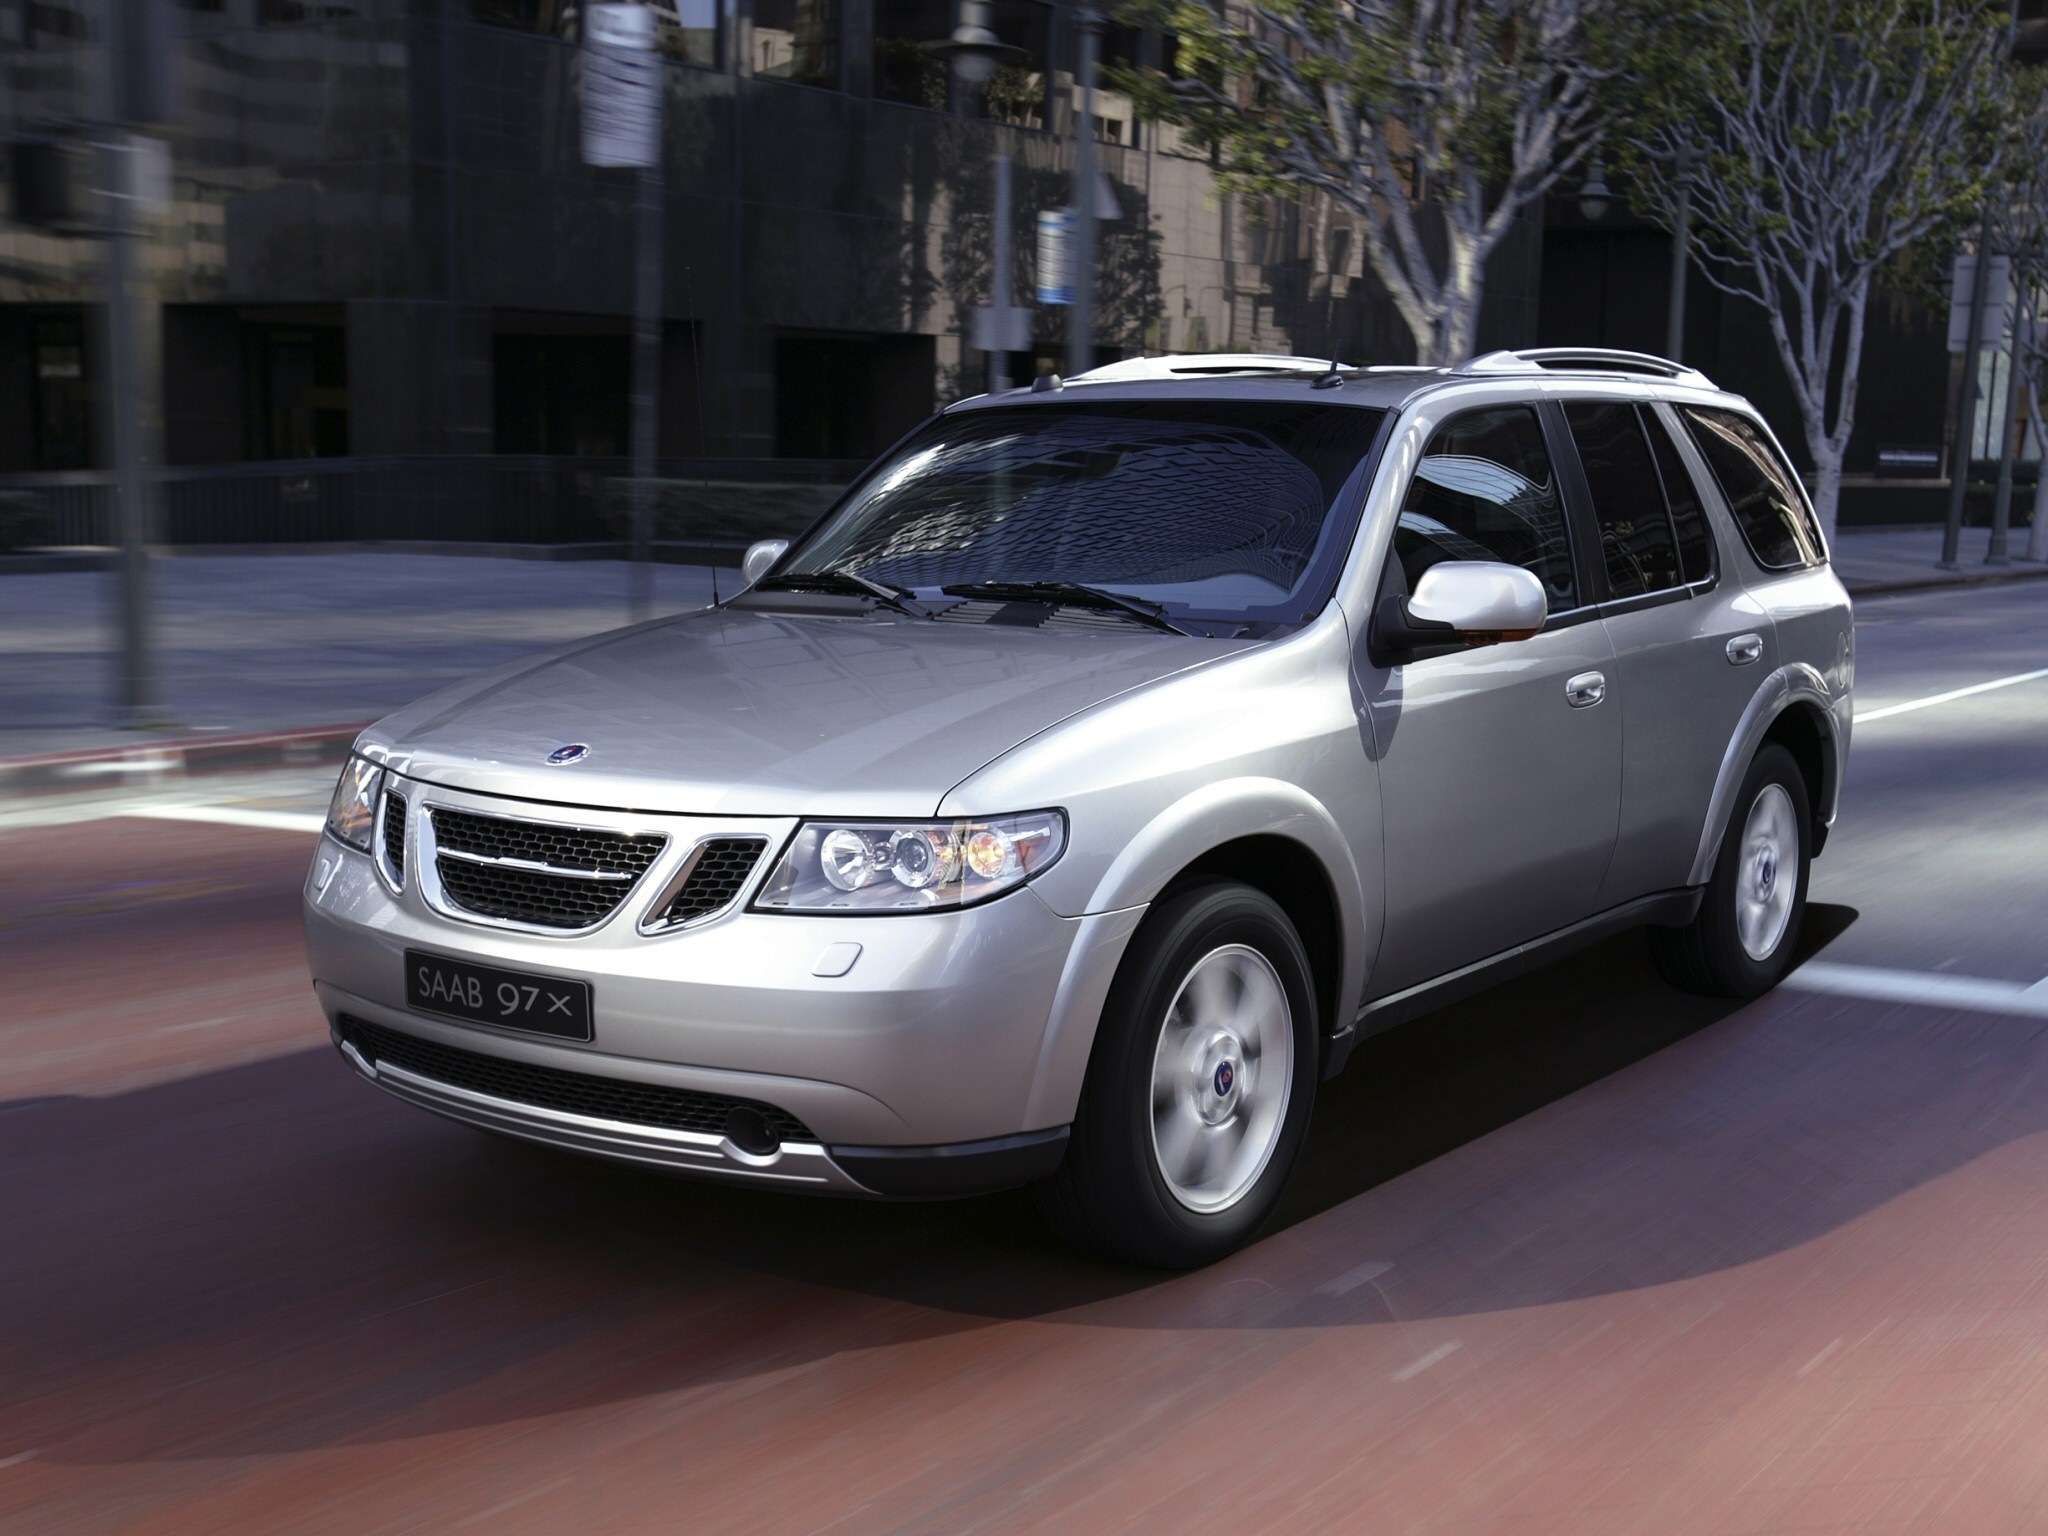 Dodge V8 Engines SAAB 9-7X specs - 2005, 2006, 2007, 2008 - autoevolution